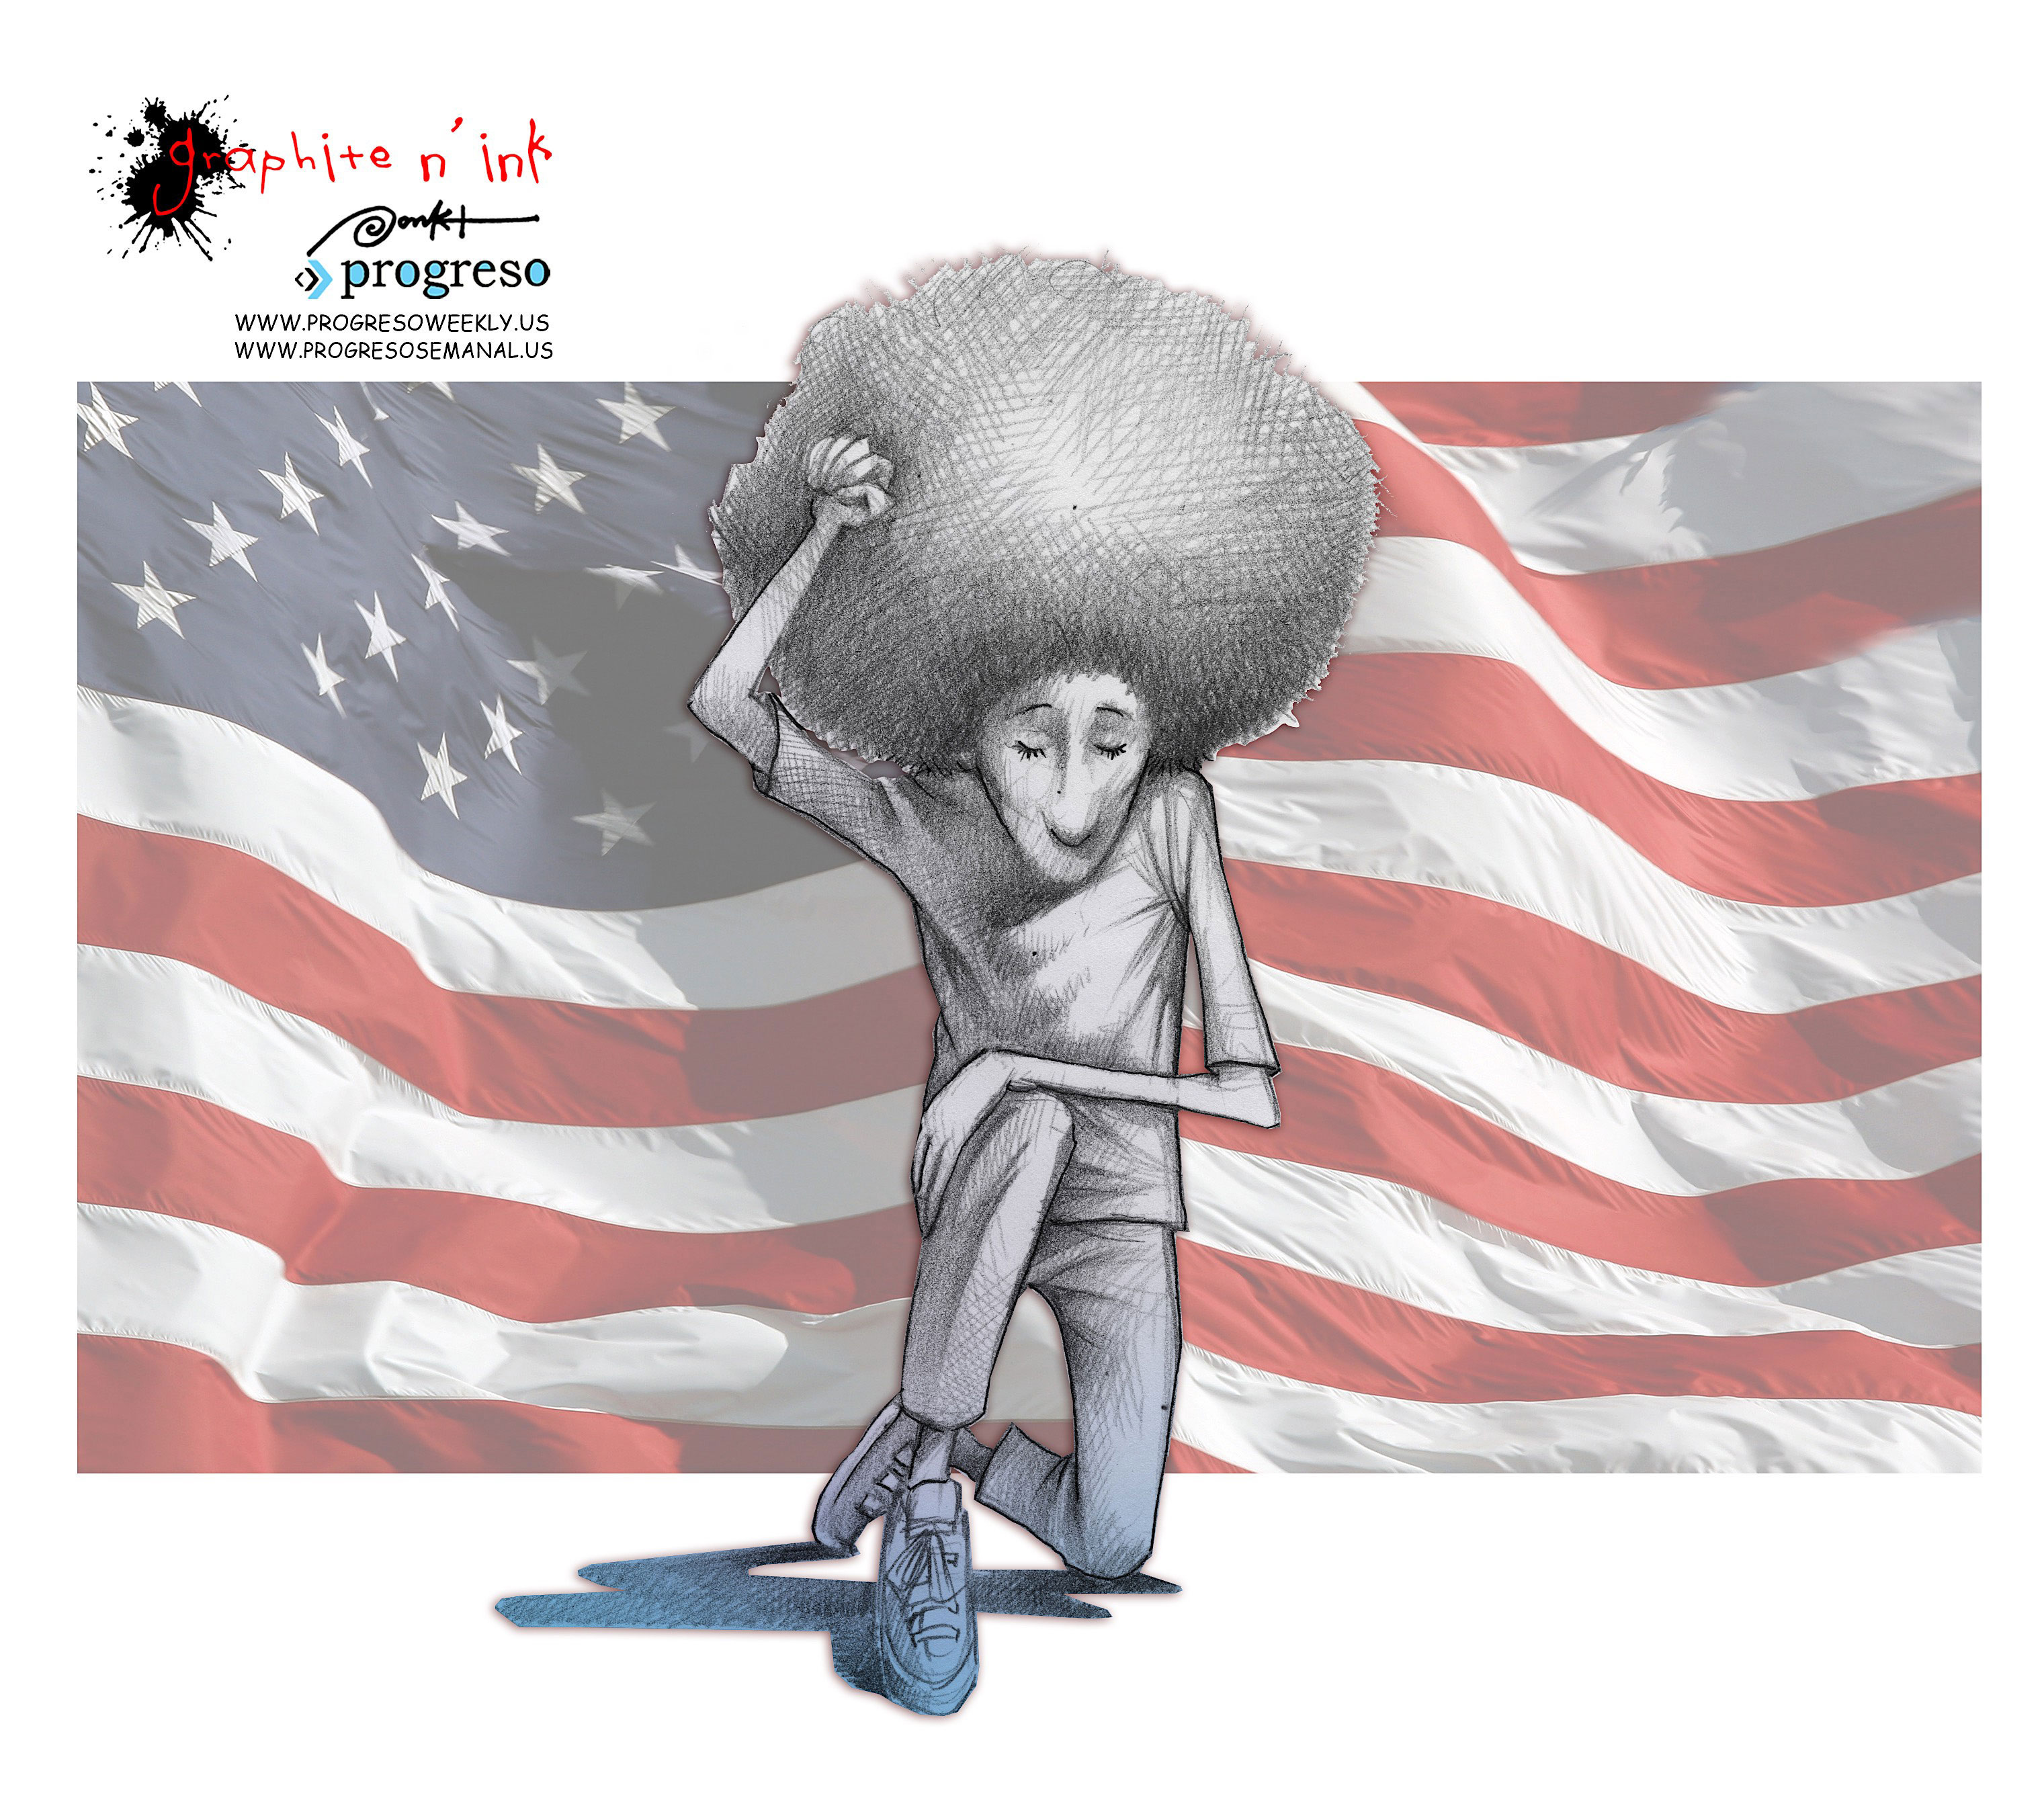 patriotism and protest